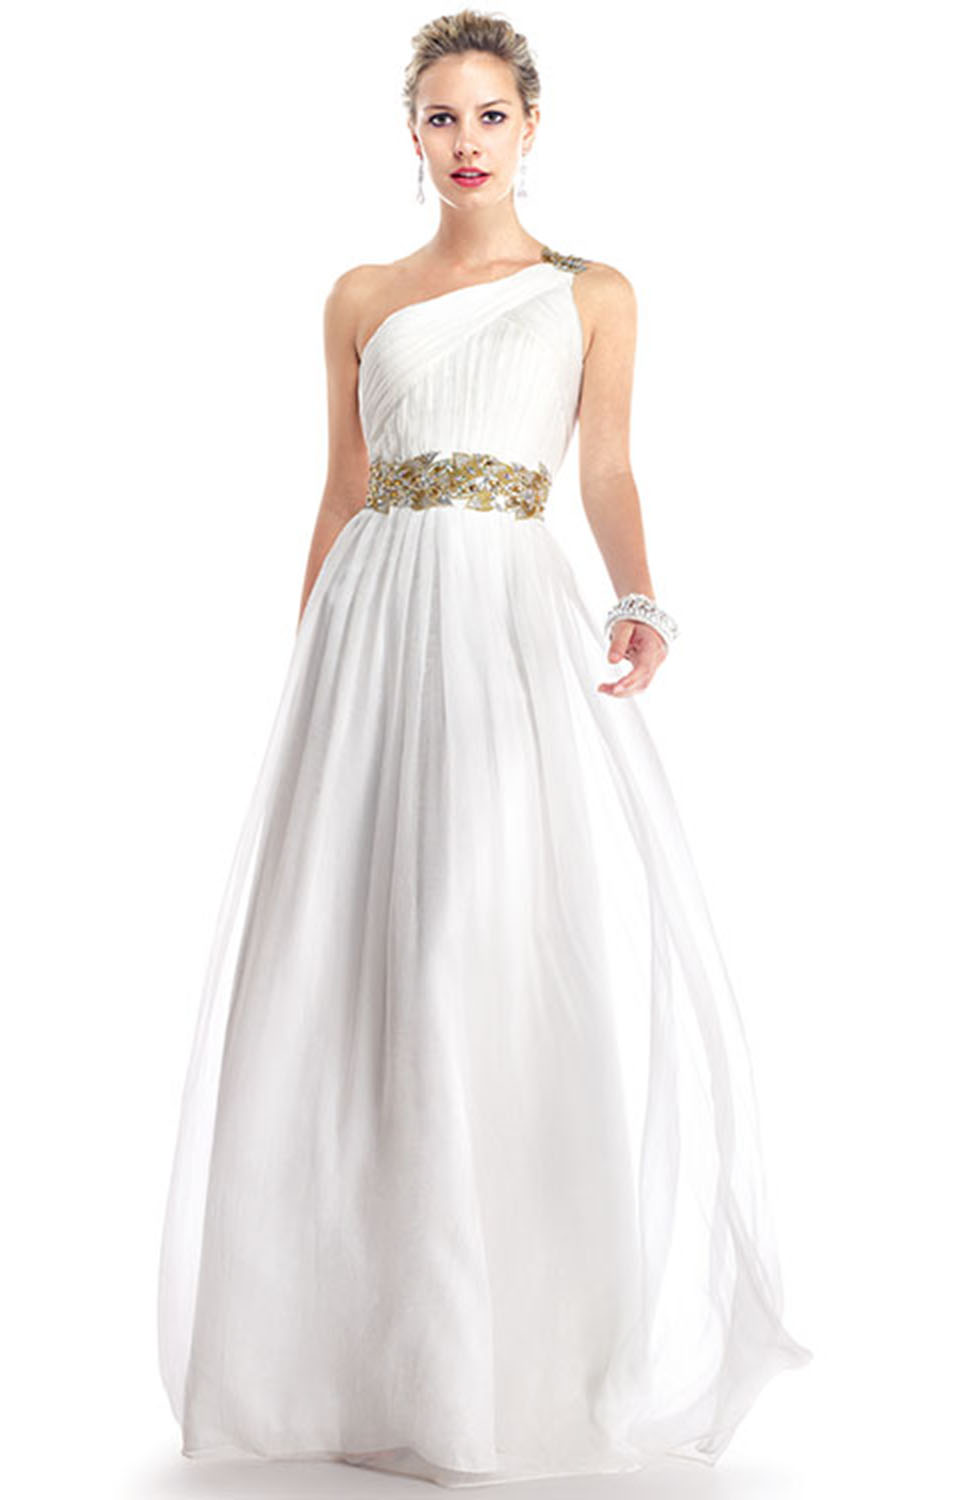 0912 - Grecian Wedding Dress